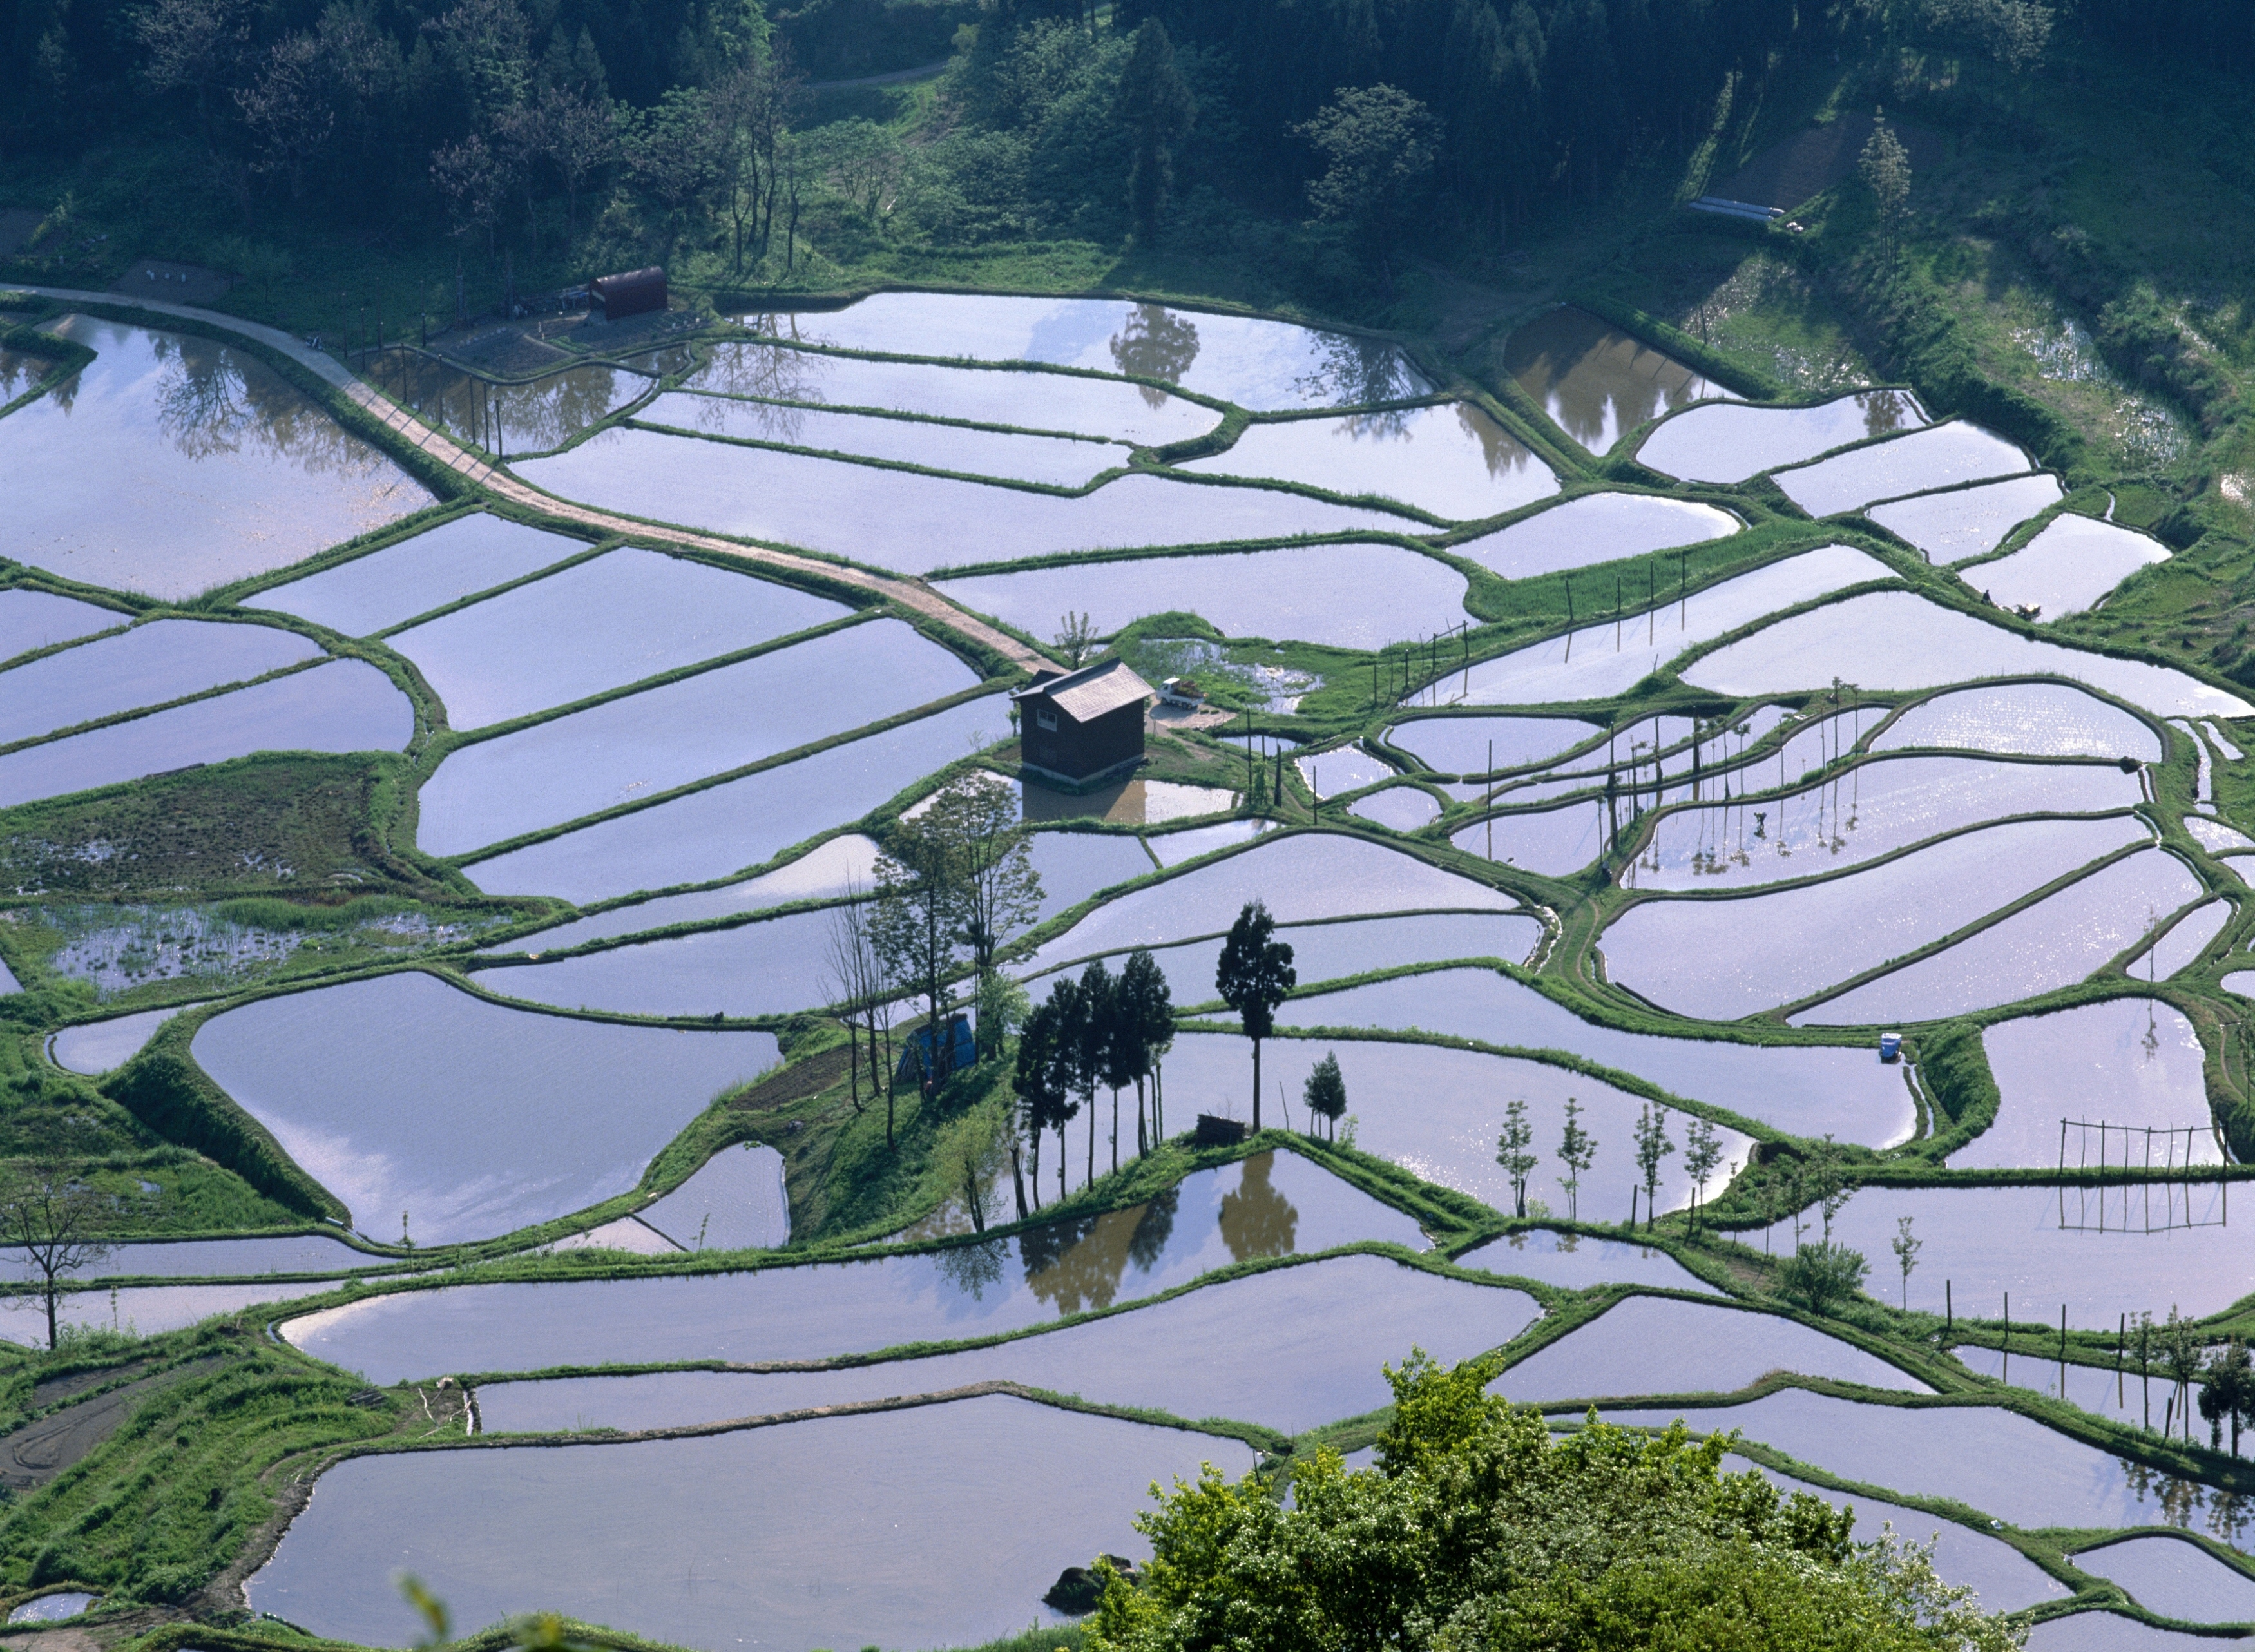 Terraced rice fields in Niigata Prefecture. OFFICE OF THE GOVERNOR OF NIIGATA